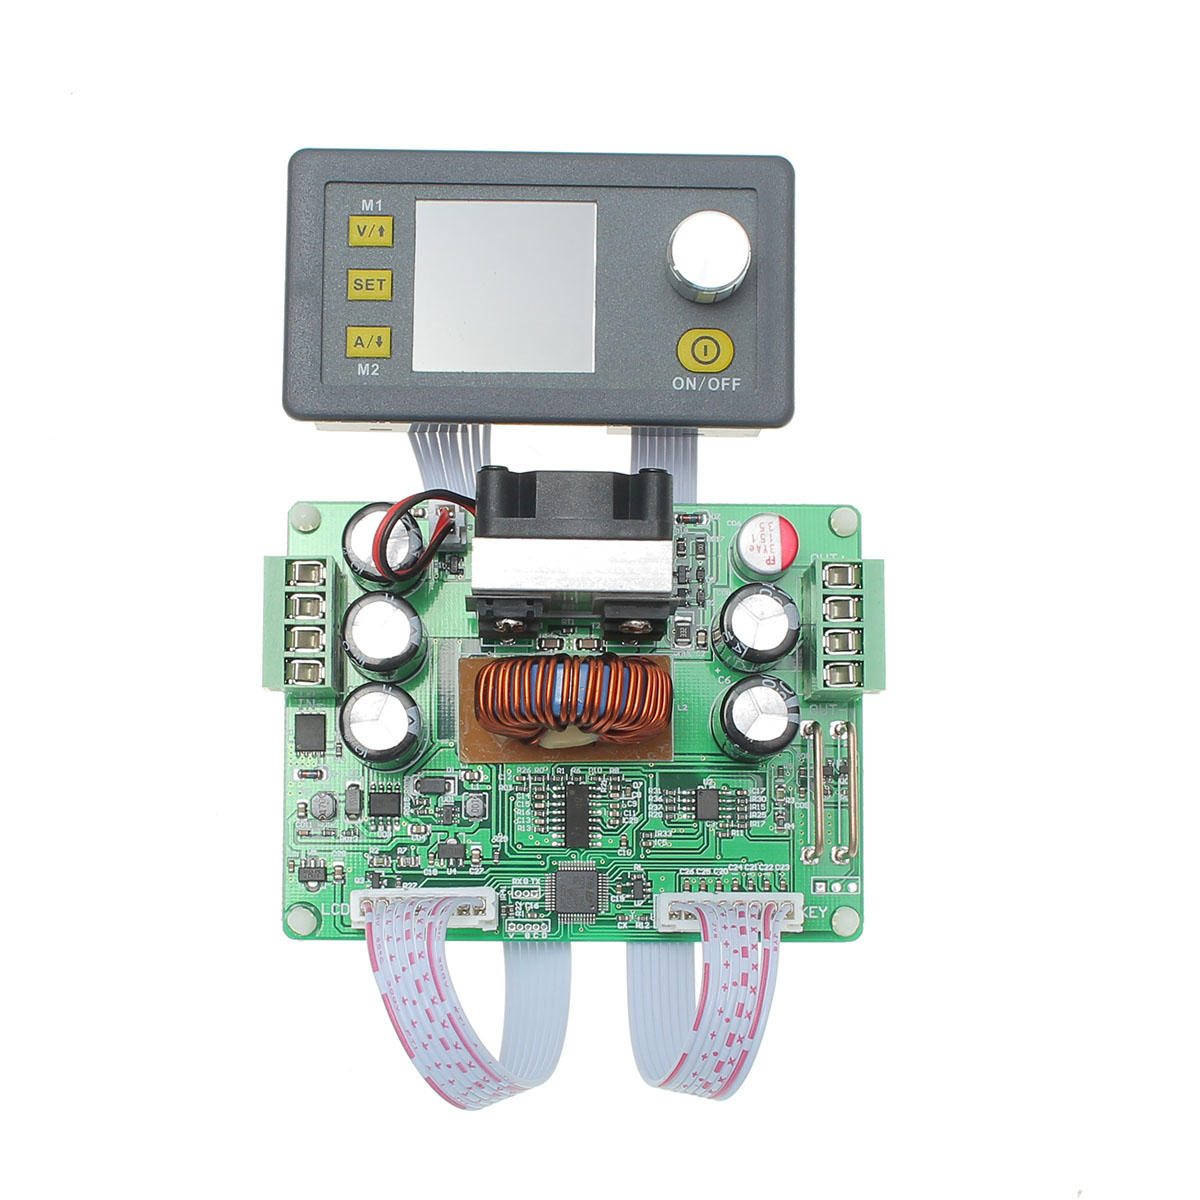 Ruideng Dps3012 32v 12a Buck Adjustable Dc Constant Voltage Power Connect A Simple Circuit With Voltmeter And Ammeter As Shown Supply Module Integrated